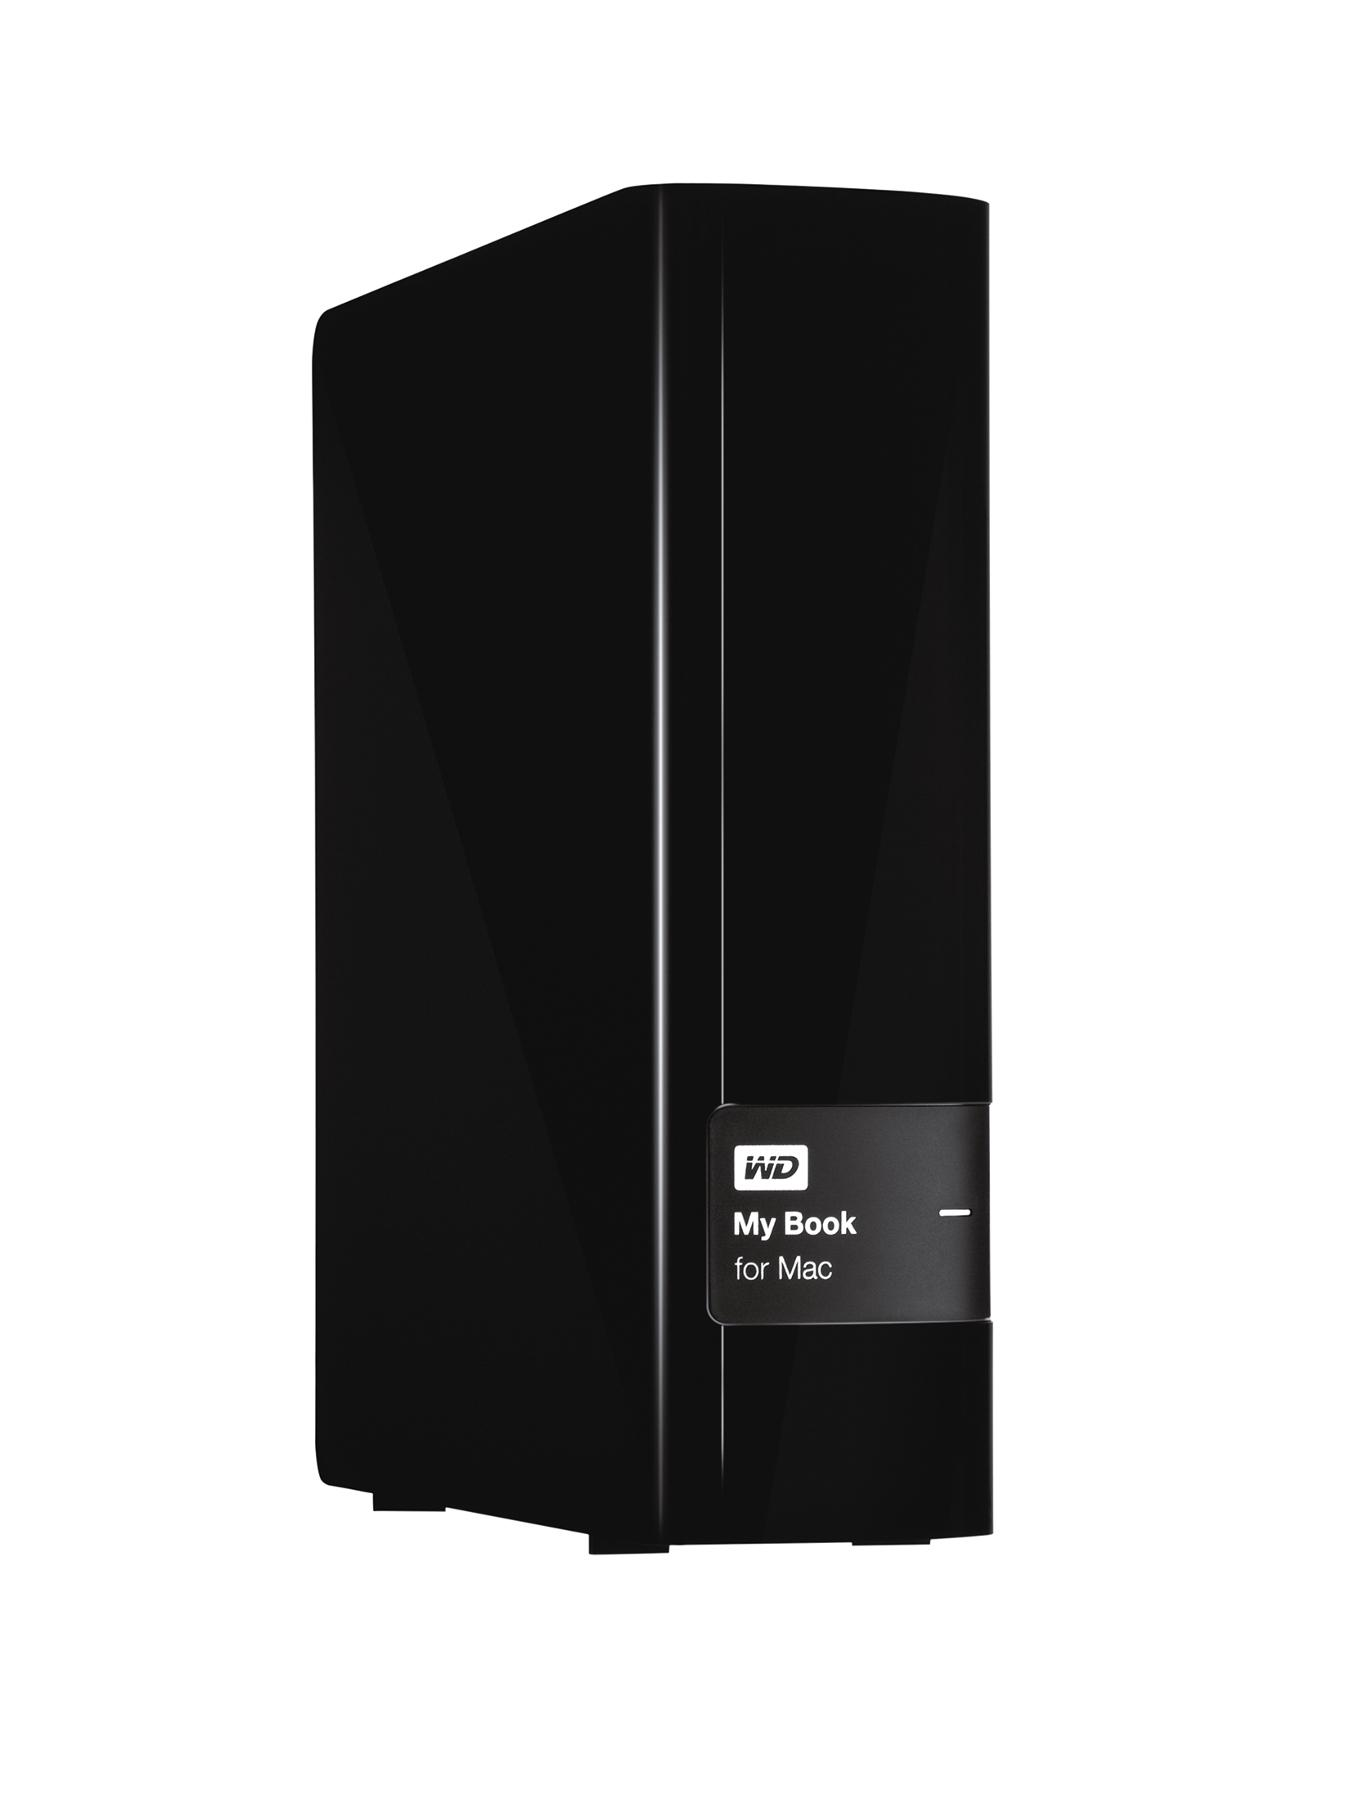 Western Digital My Book for Mac 3Tb Desktop External Hard Drive - Black